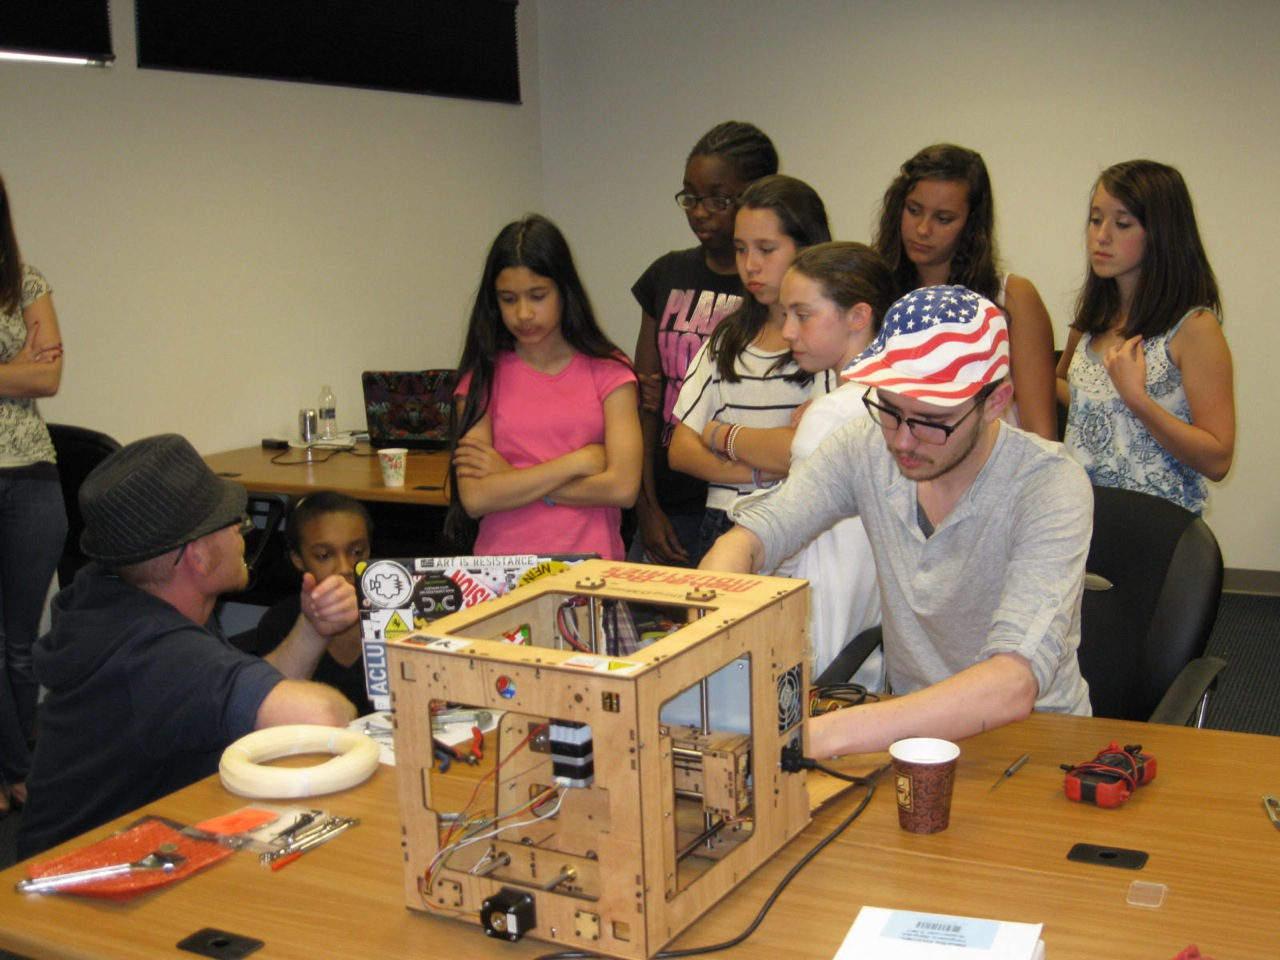 Photo of MakerBot employee showing girls how to build 3D printer